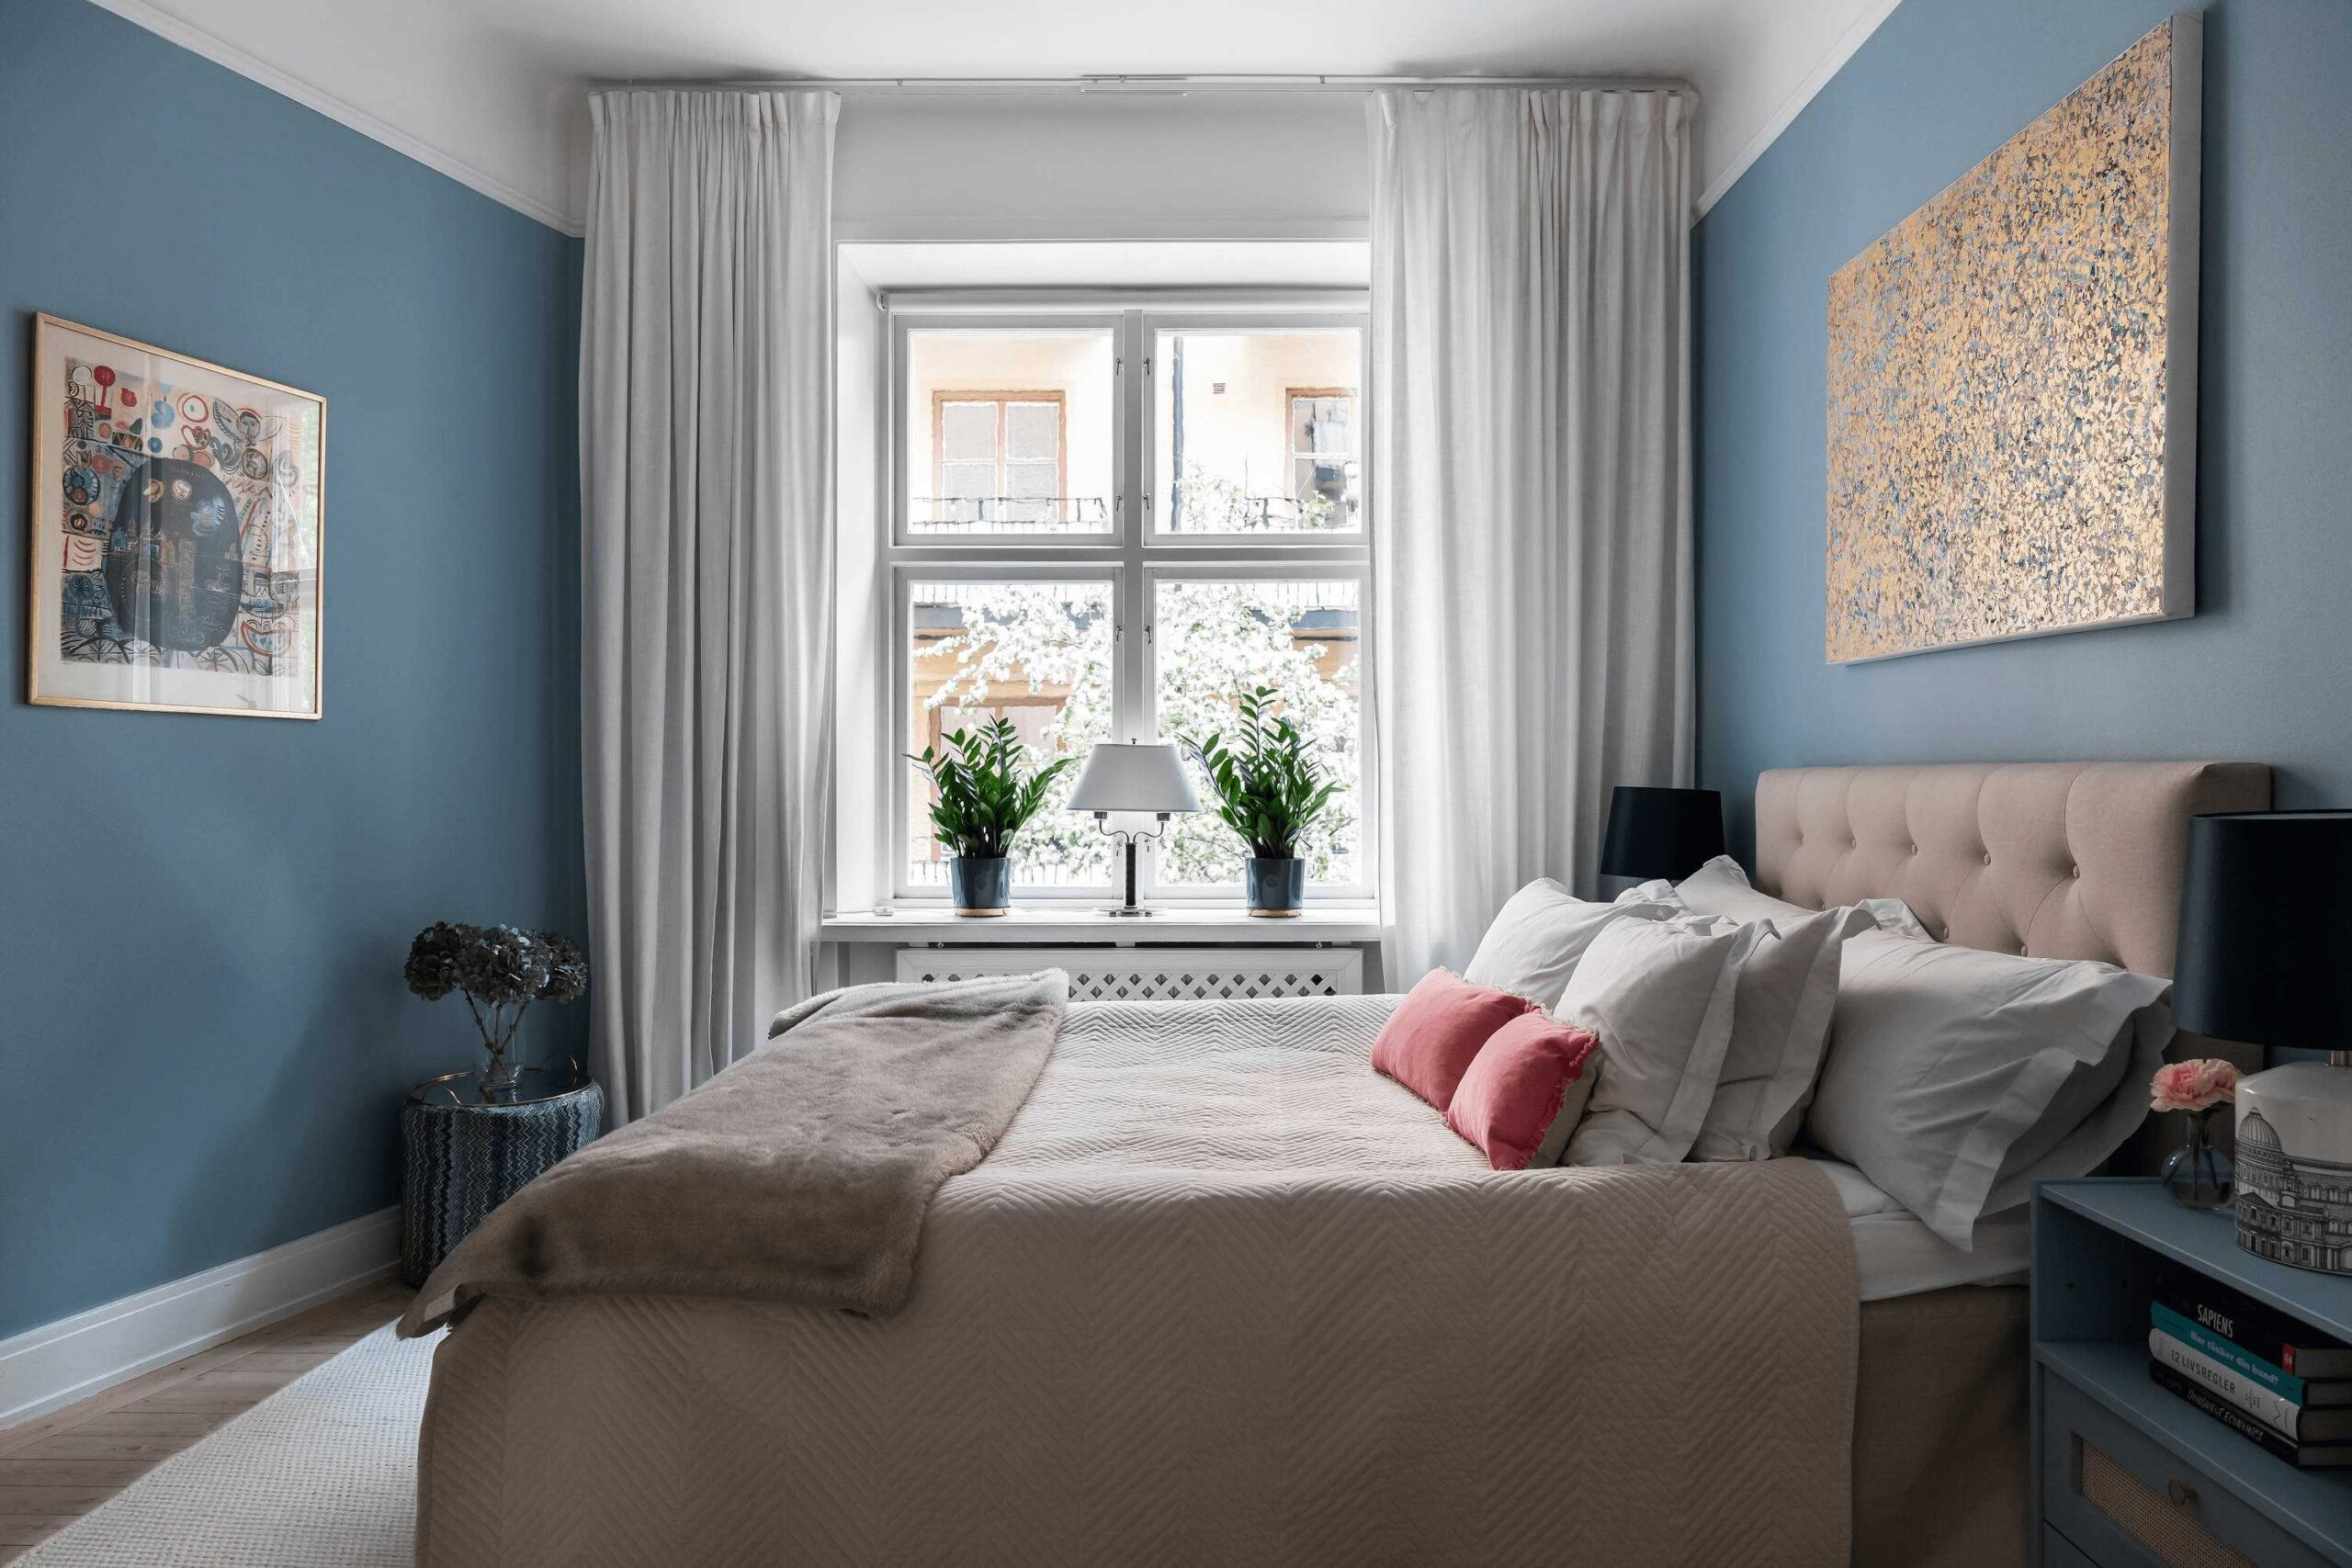 this-is-art-inspired-Scandinavian-style-apartment-a-look-at-the-bedroom-with-a-classic-double-bed-